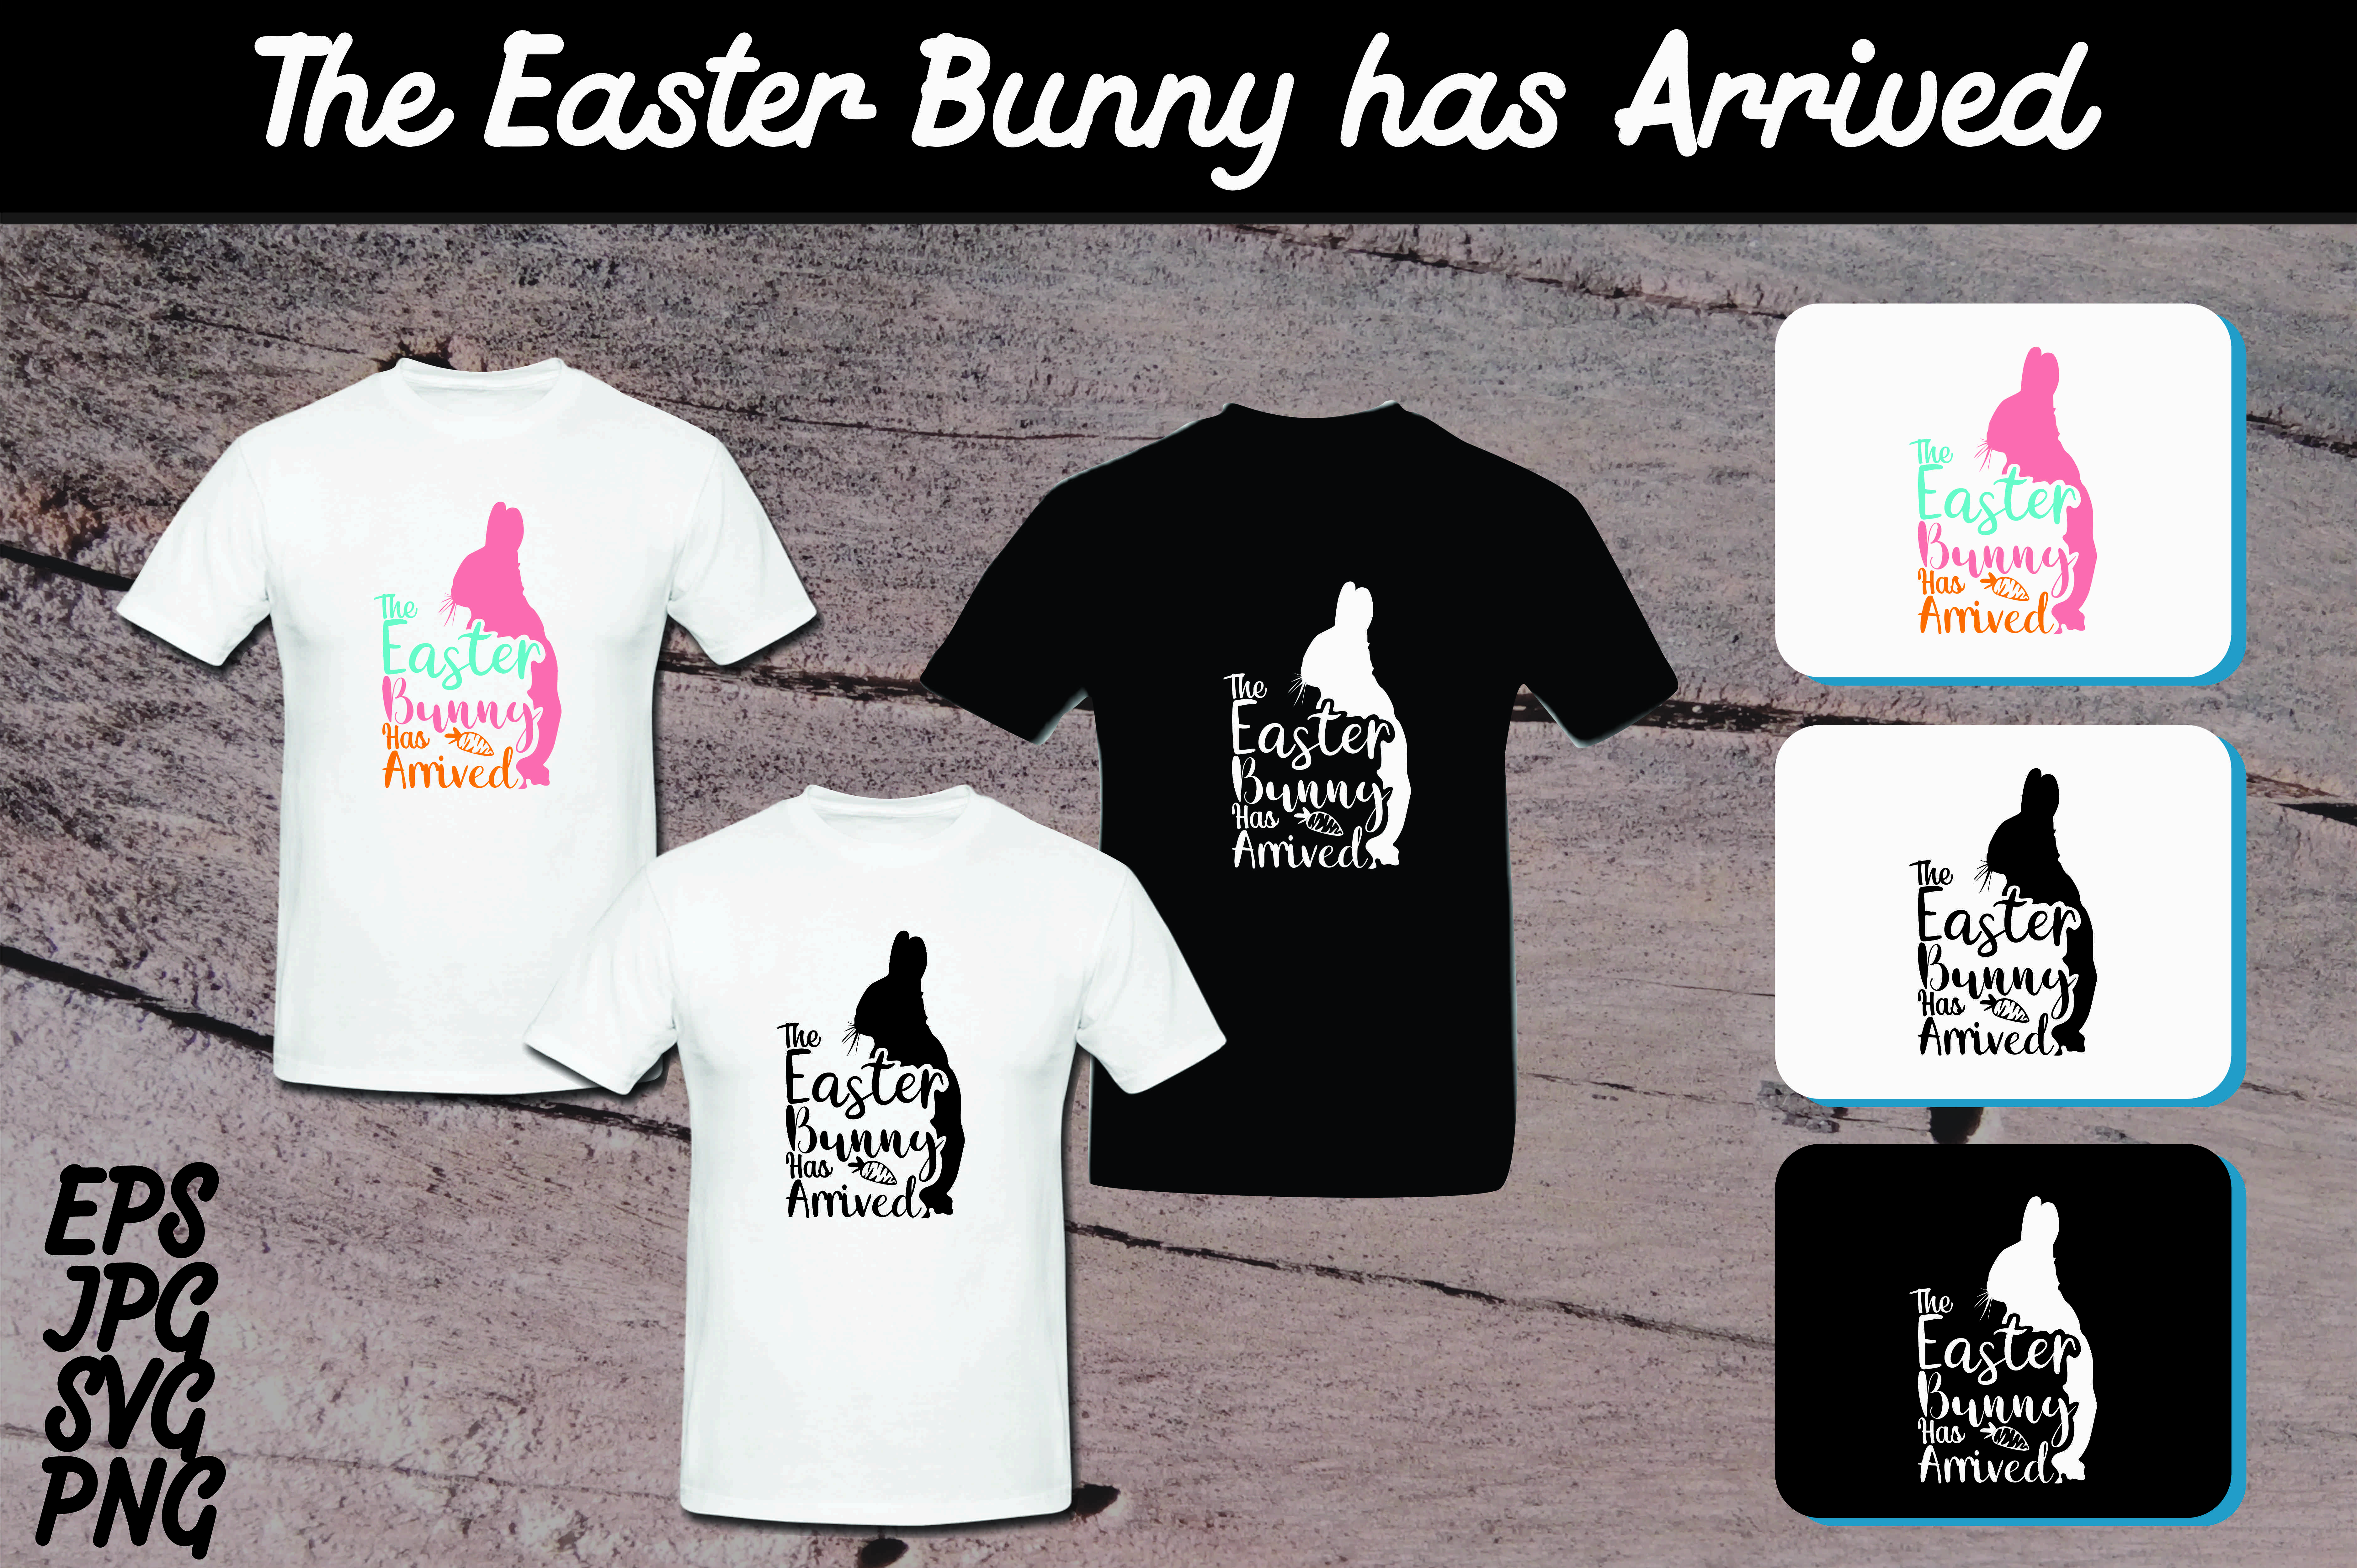 Download Free The Easter Bunny Has Arrived Set Svg Vector Image Graphic By SVG Cut Files